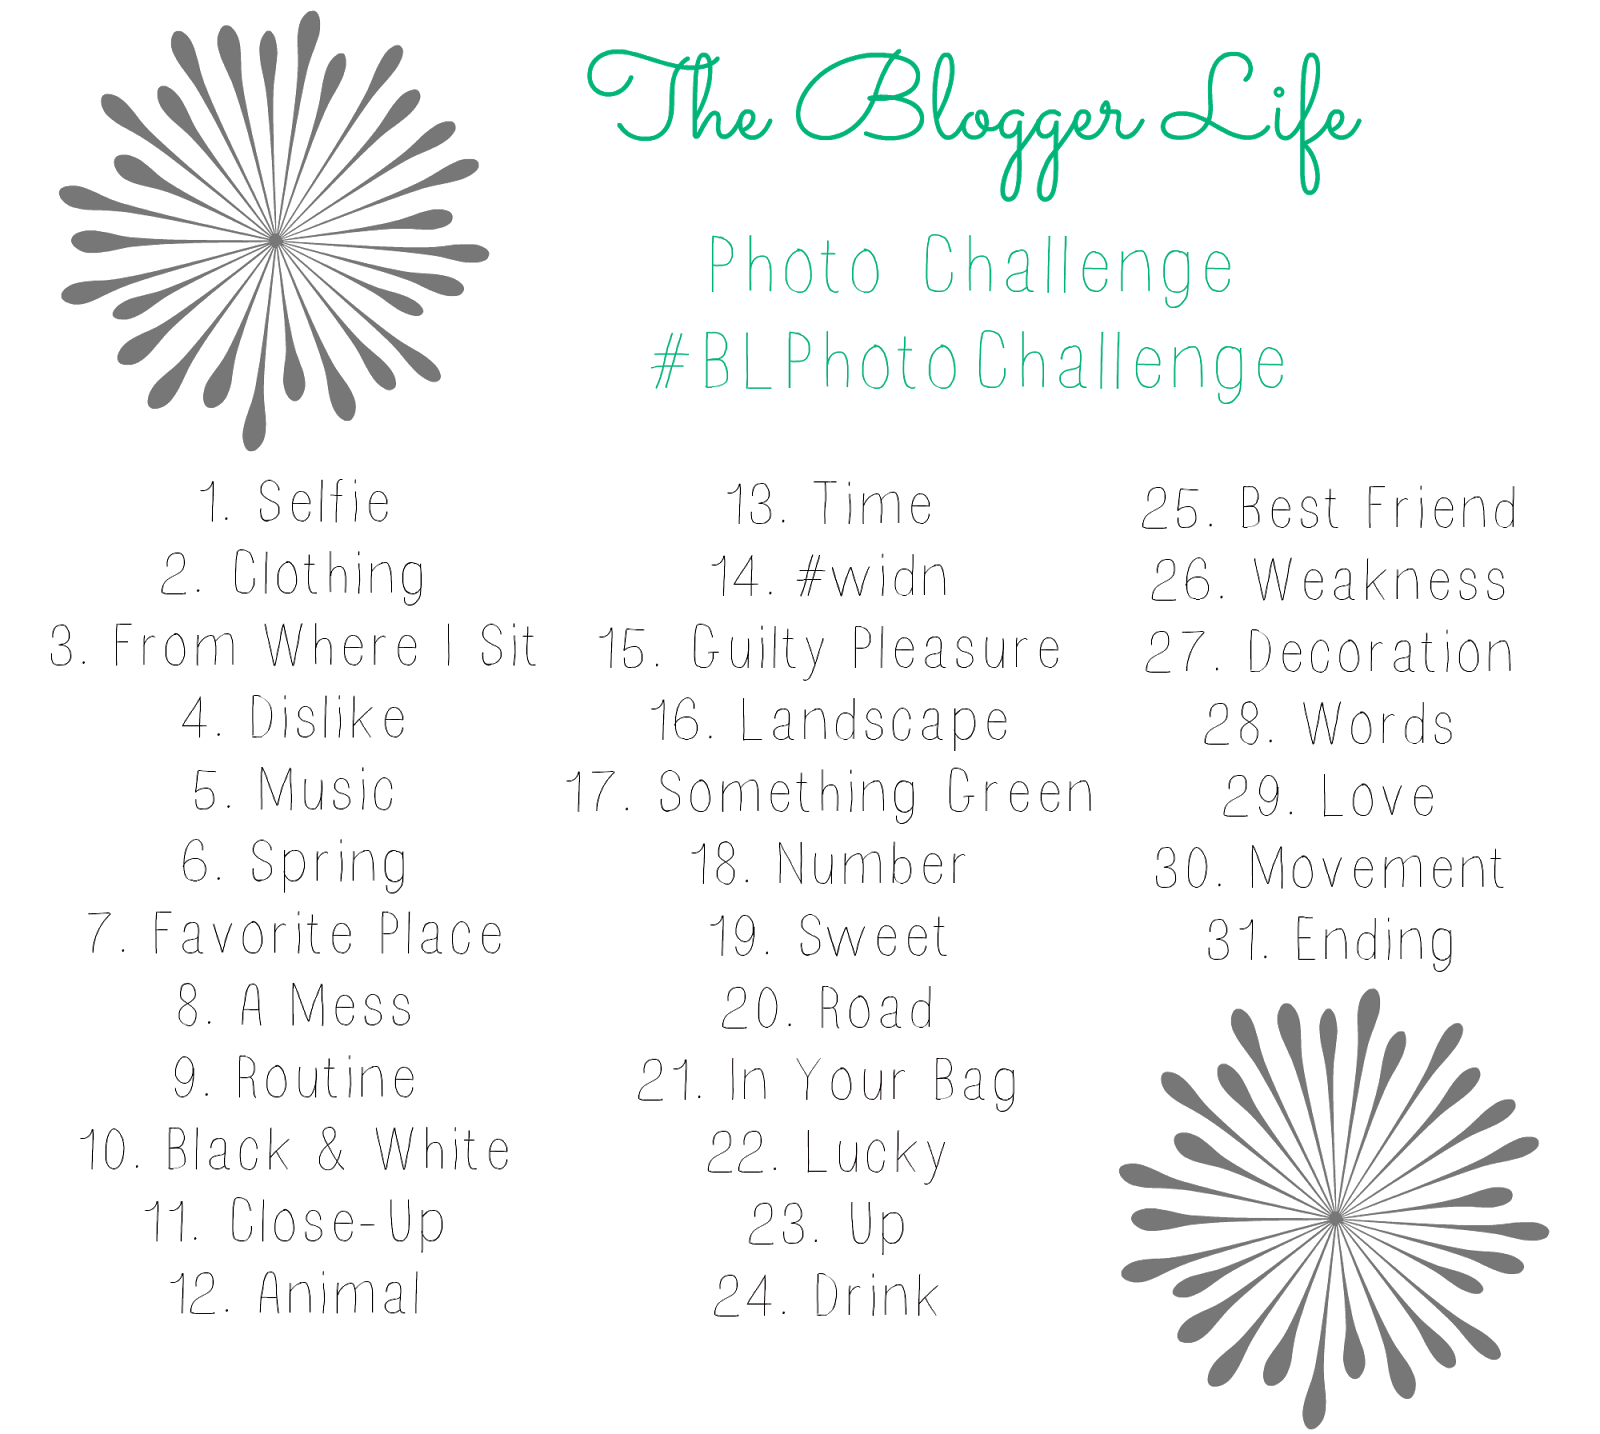 The Blogger Life Photo Challenge - 31 photos in 31 days. #spring #bloggers #photos